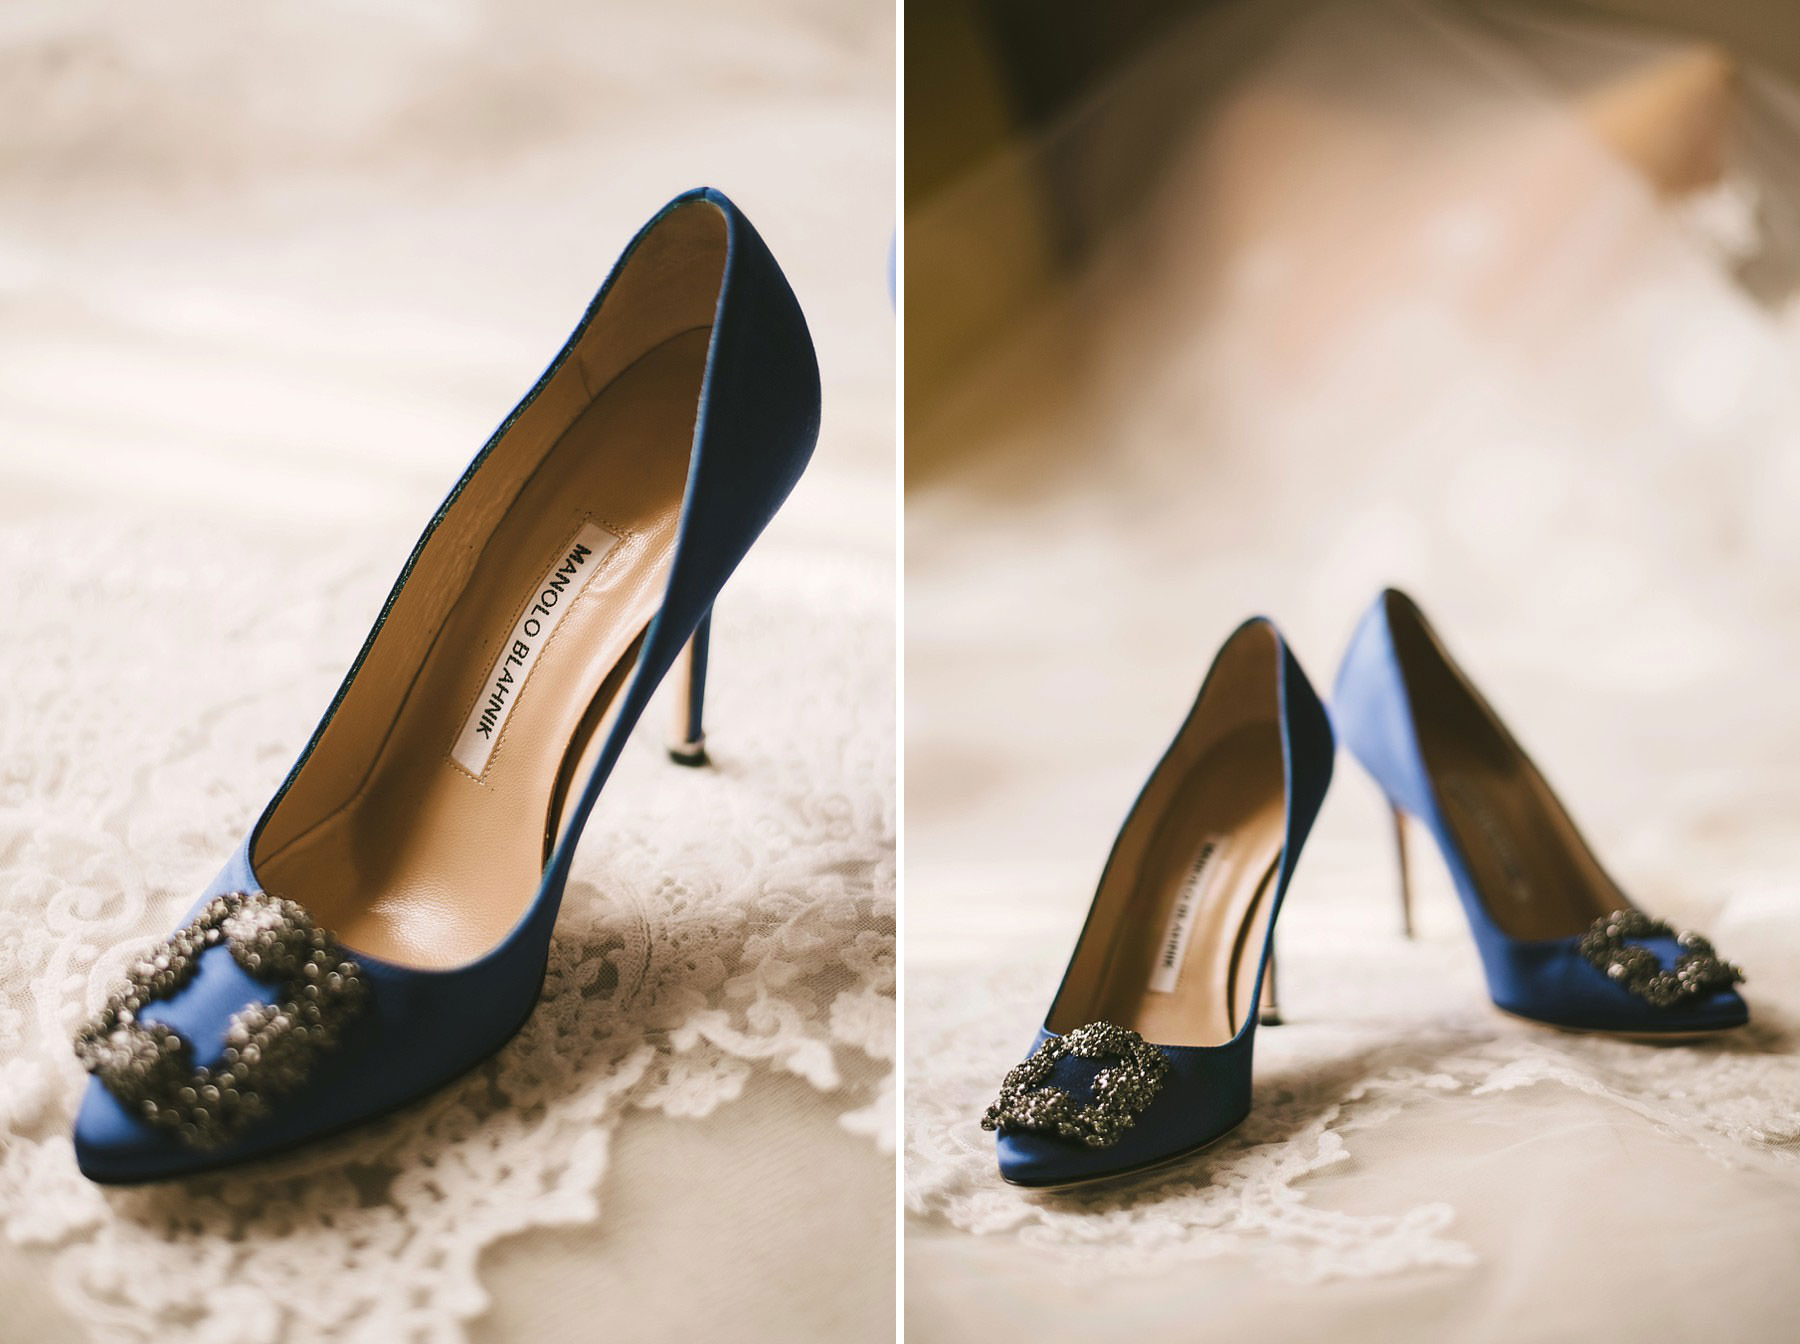 Elegant Manolo Blahnik wedding shoes